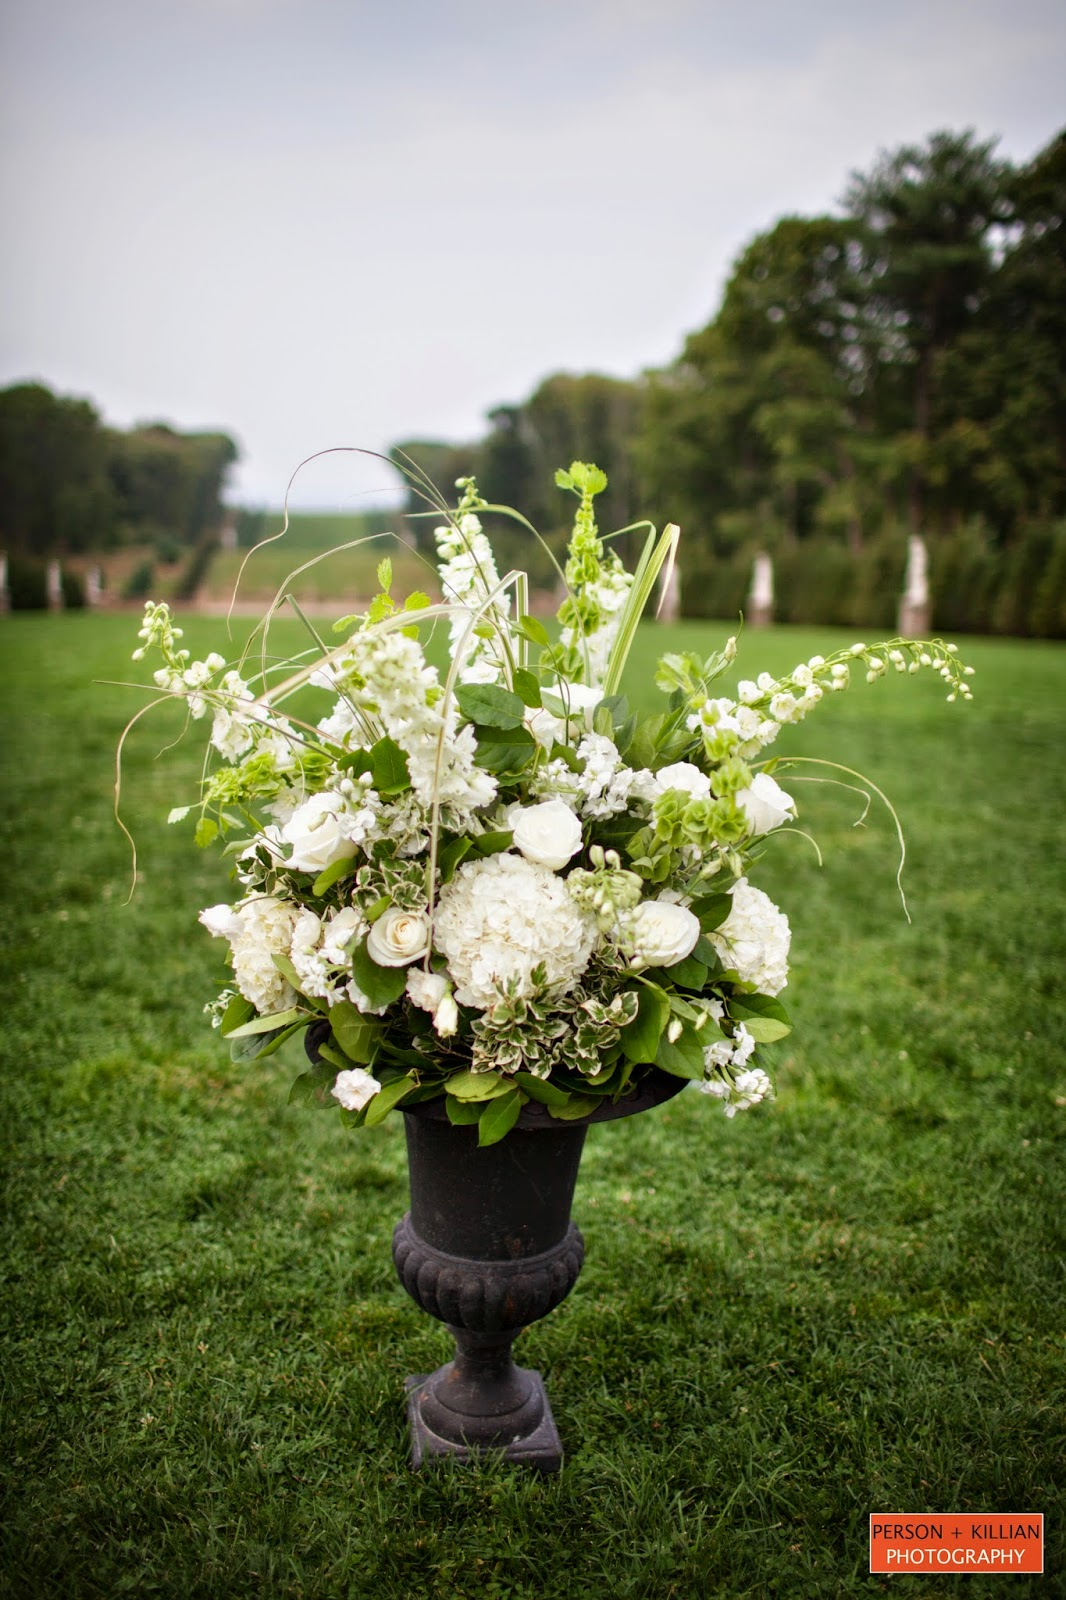 les fleurs : crane estate grand allele : person + killian photography : outdoor ceremony : black garden urn arrangements  : white and green flowers